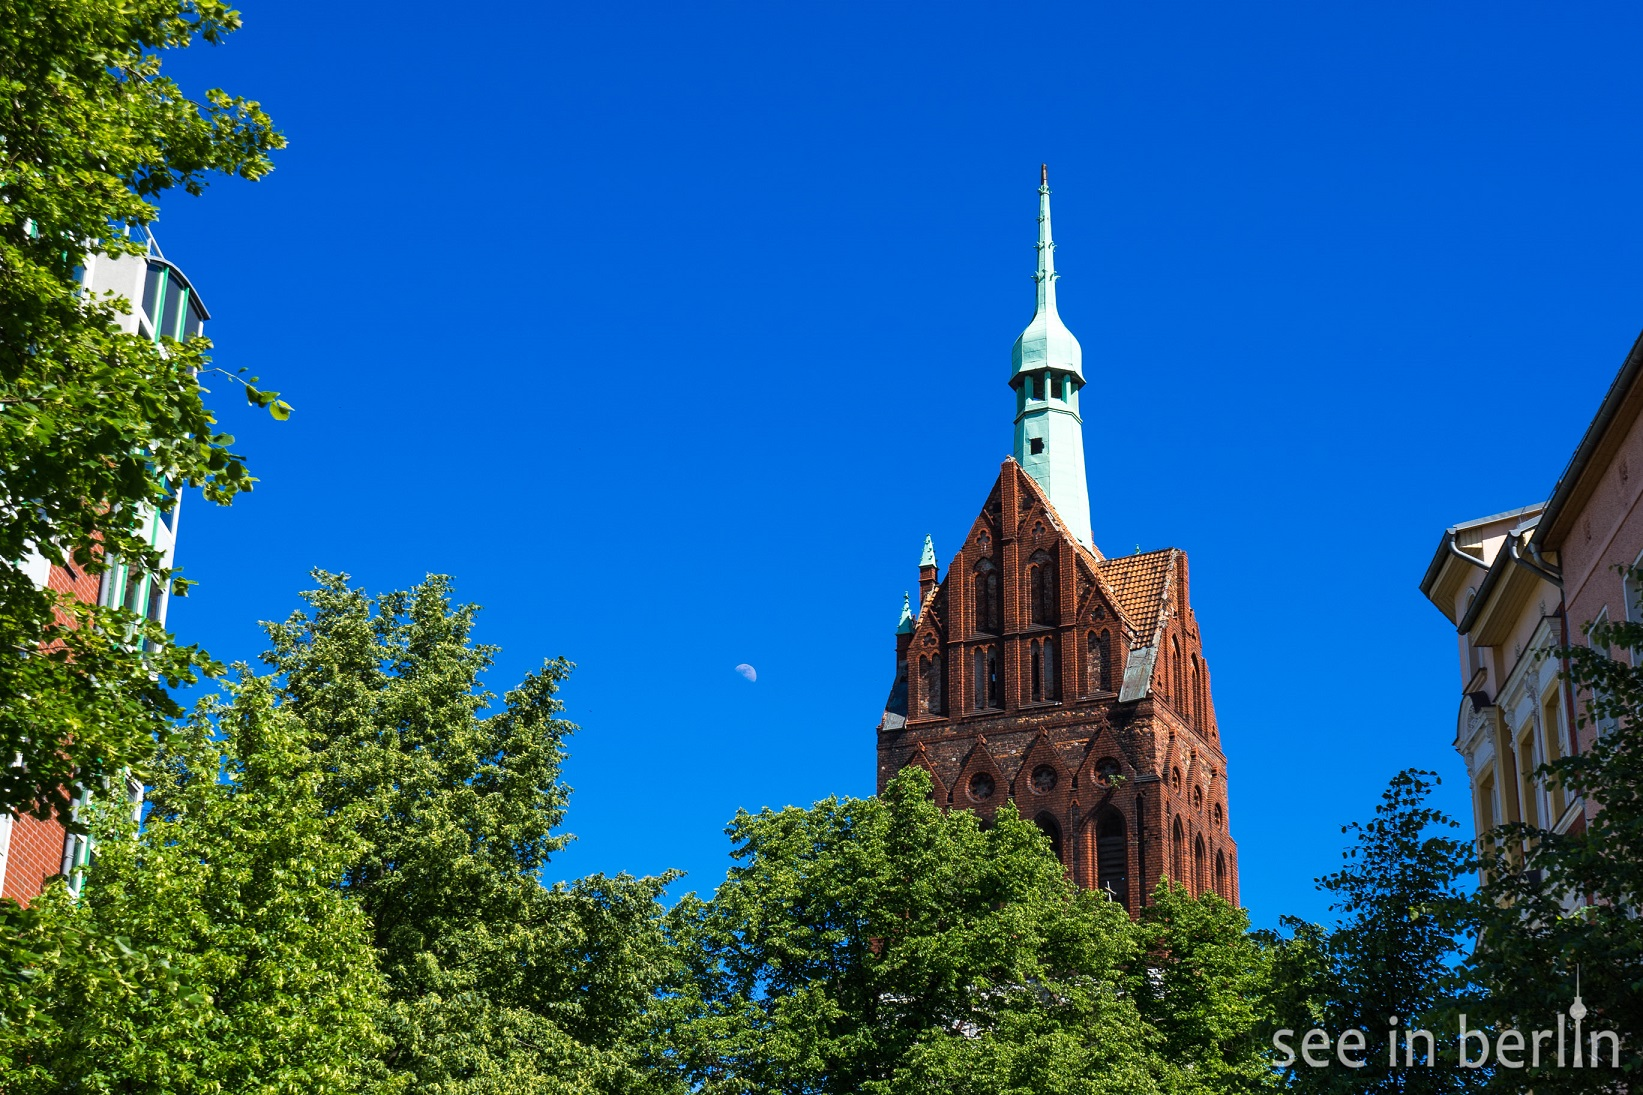 Bethanienturm (the Tower of Bethanienkirche)